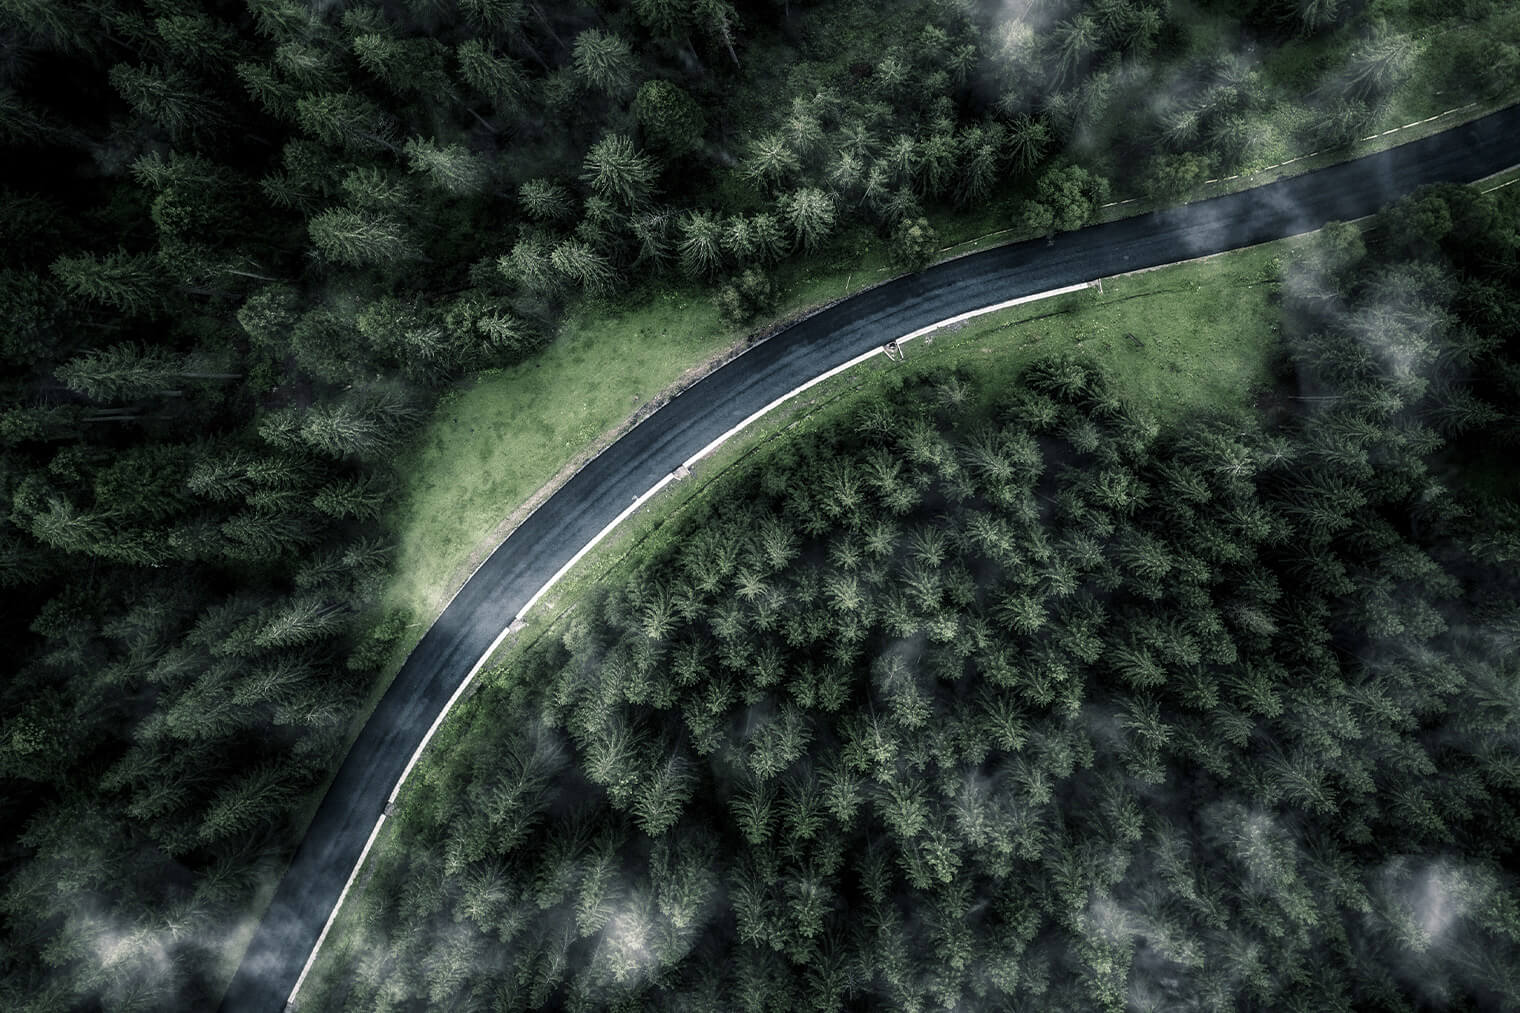 Aerial Photo of Moody Forest with Road